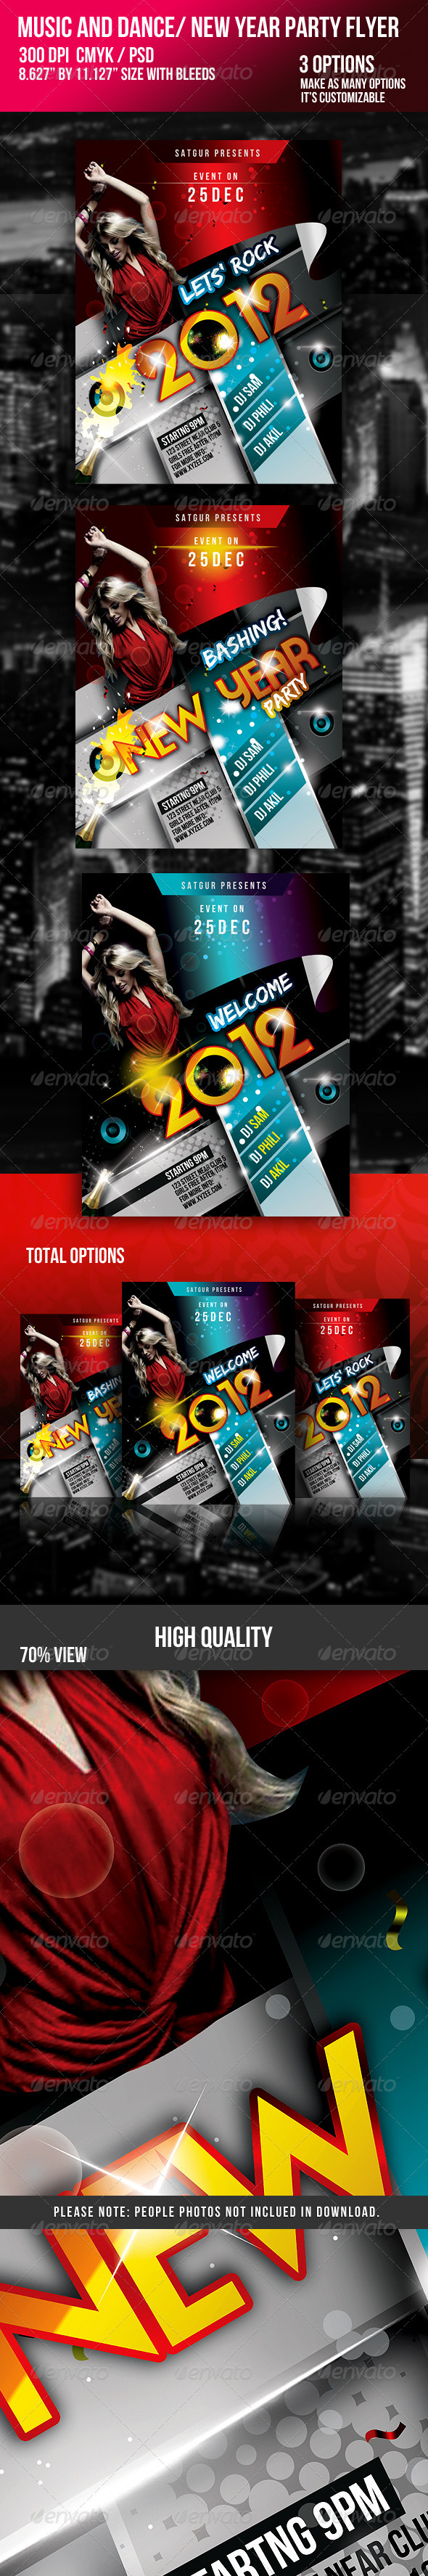 GraphicRiver 2011 New Year Dance Music Party Night Flyer 723652